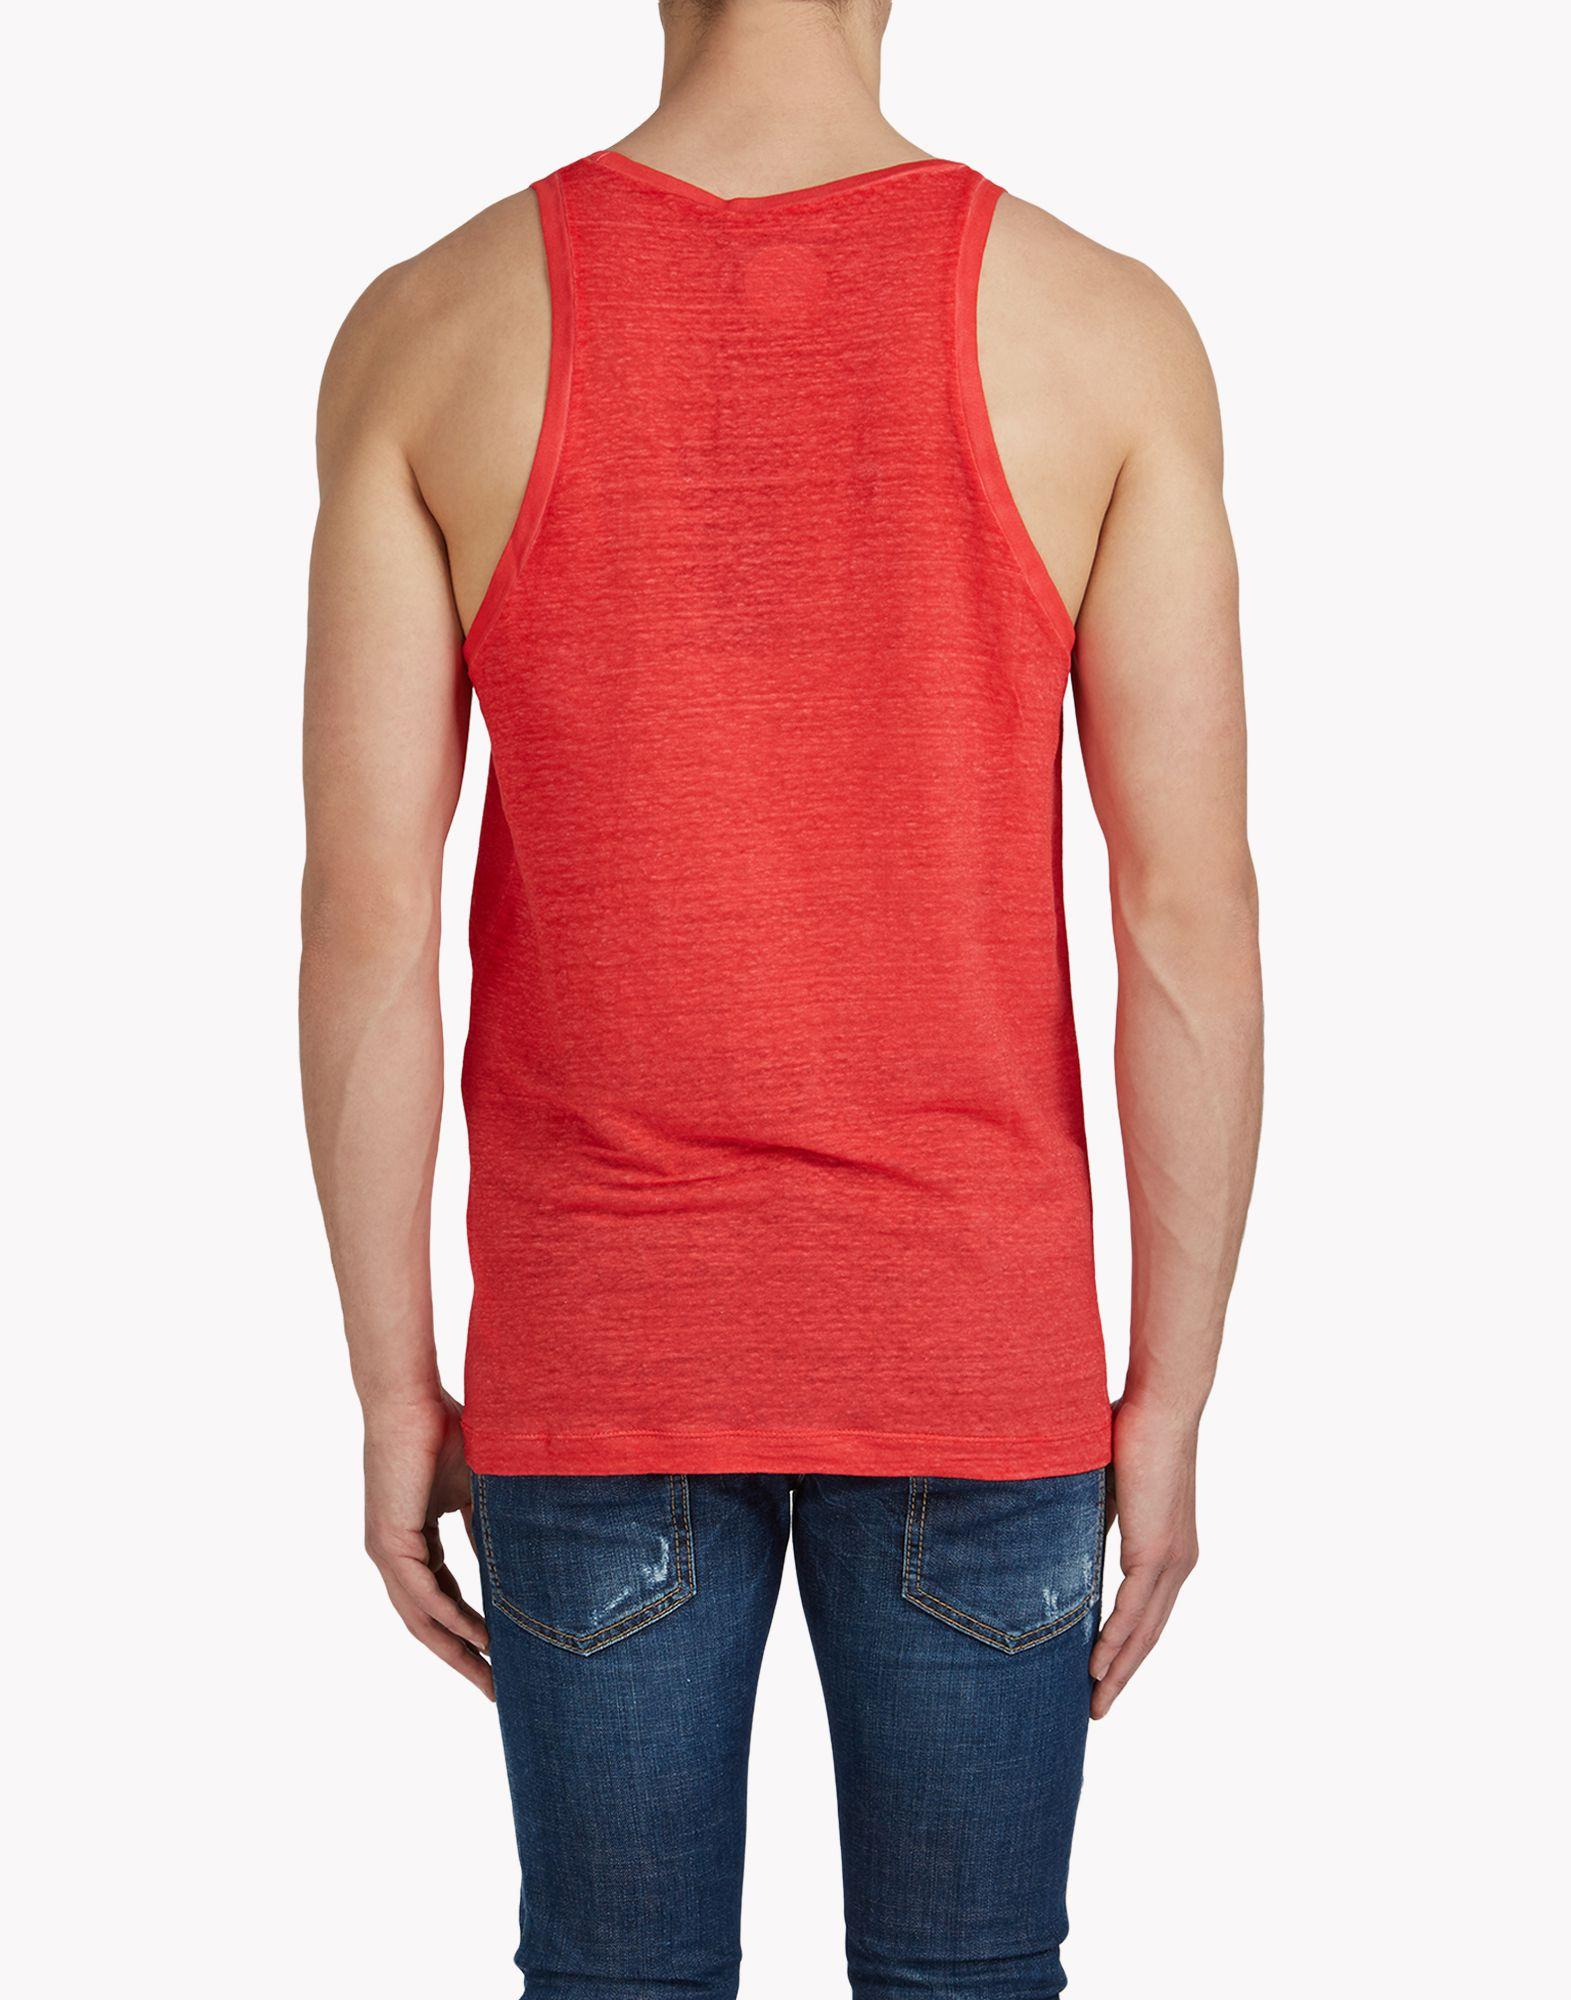 Find great deals on eBay for red tank top mens. Shop with confidence.